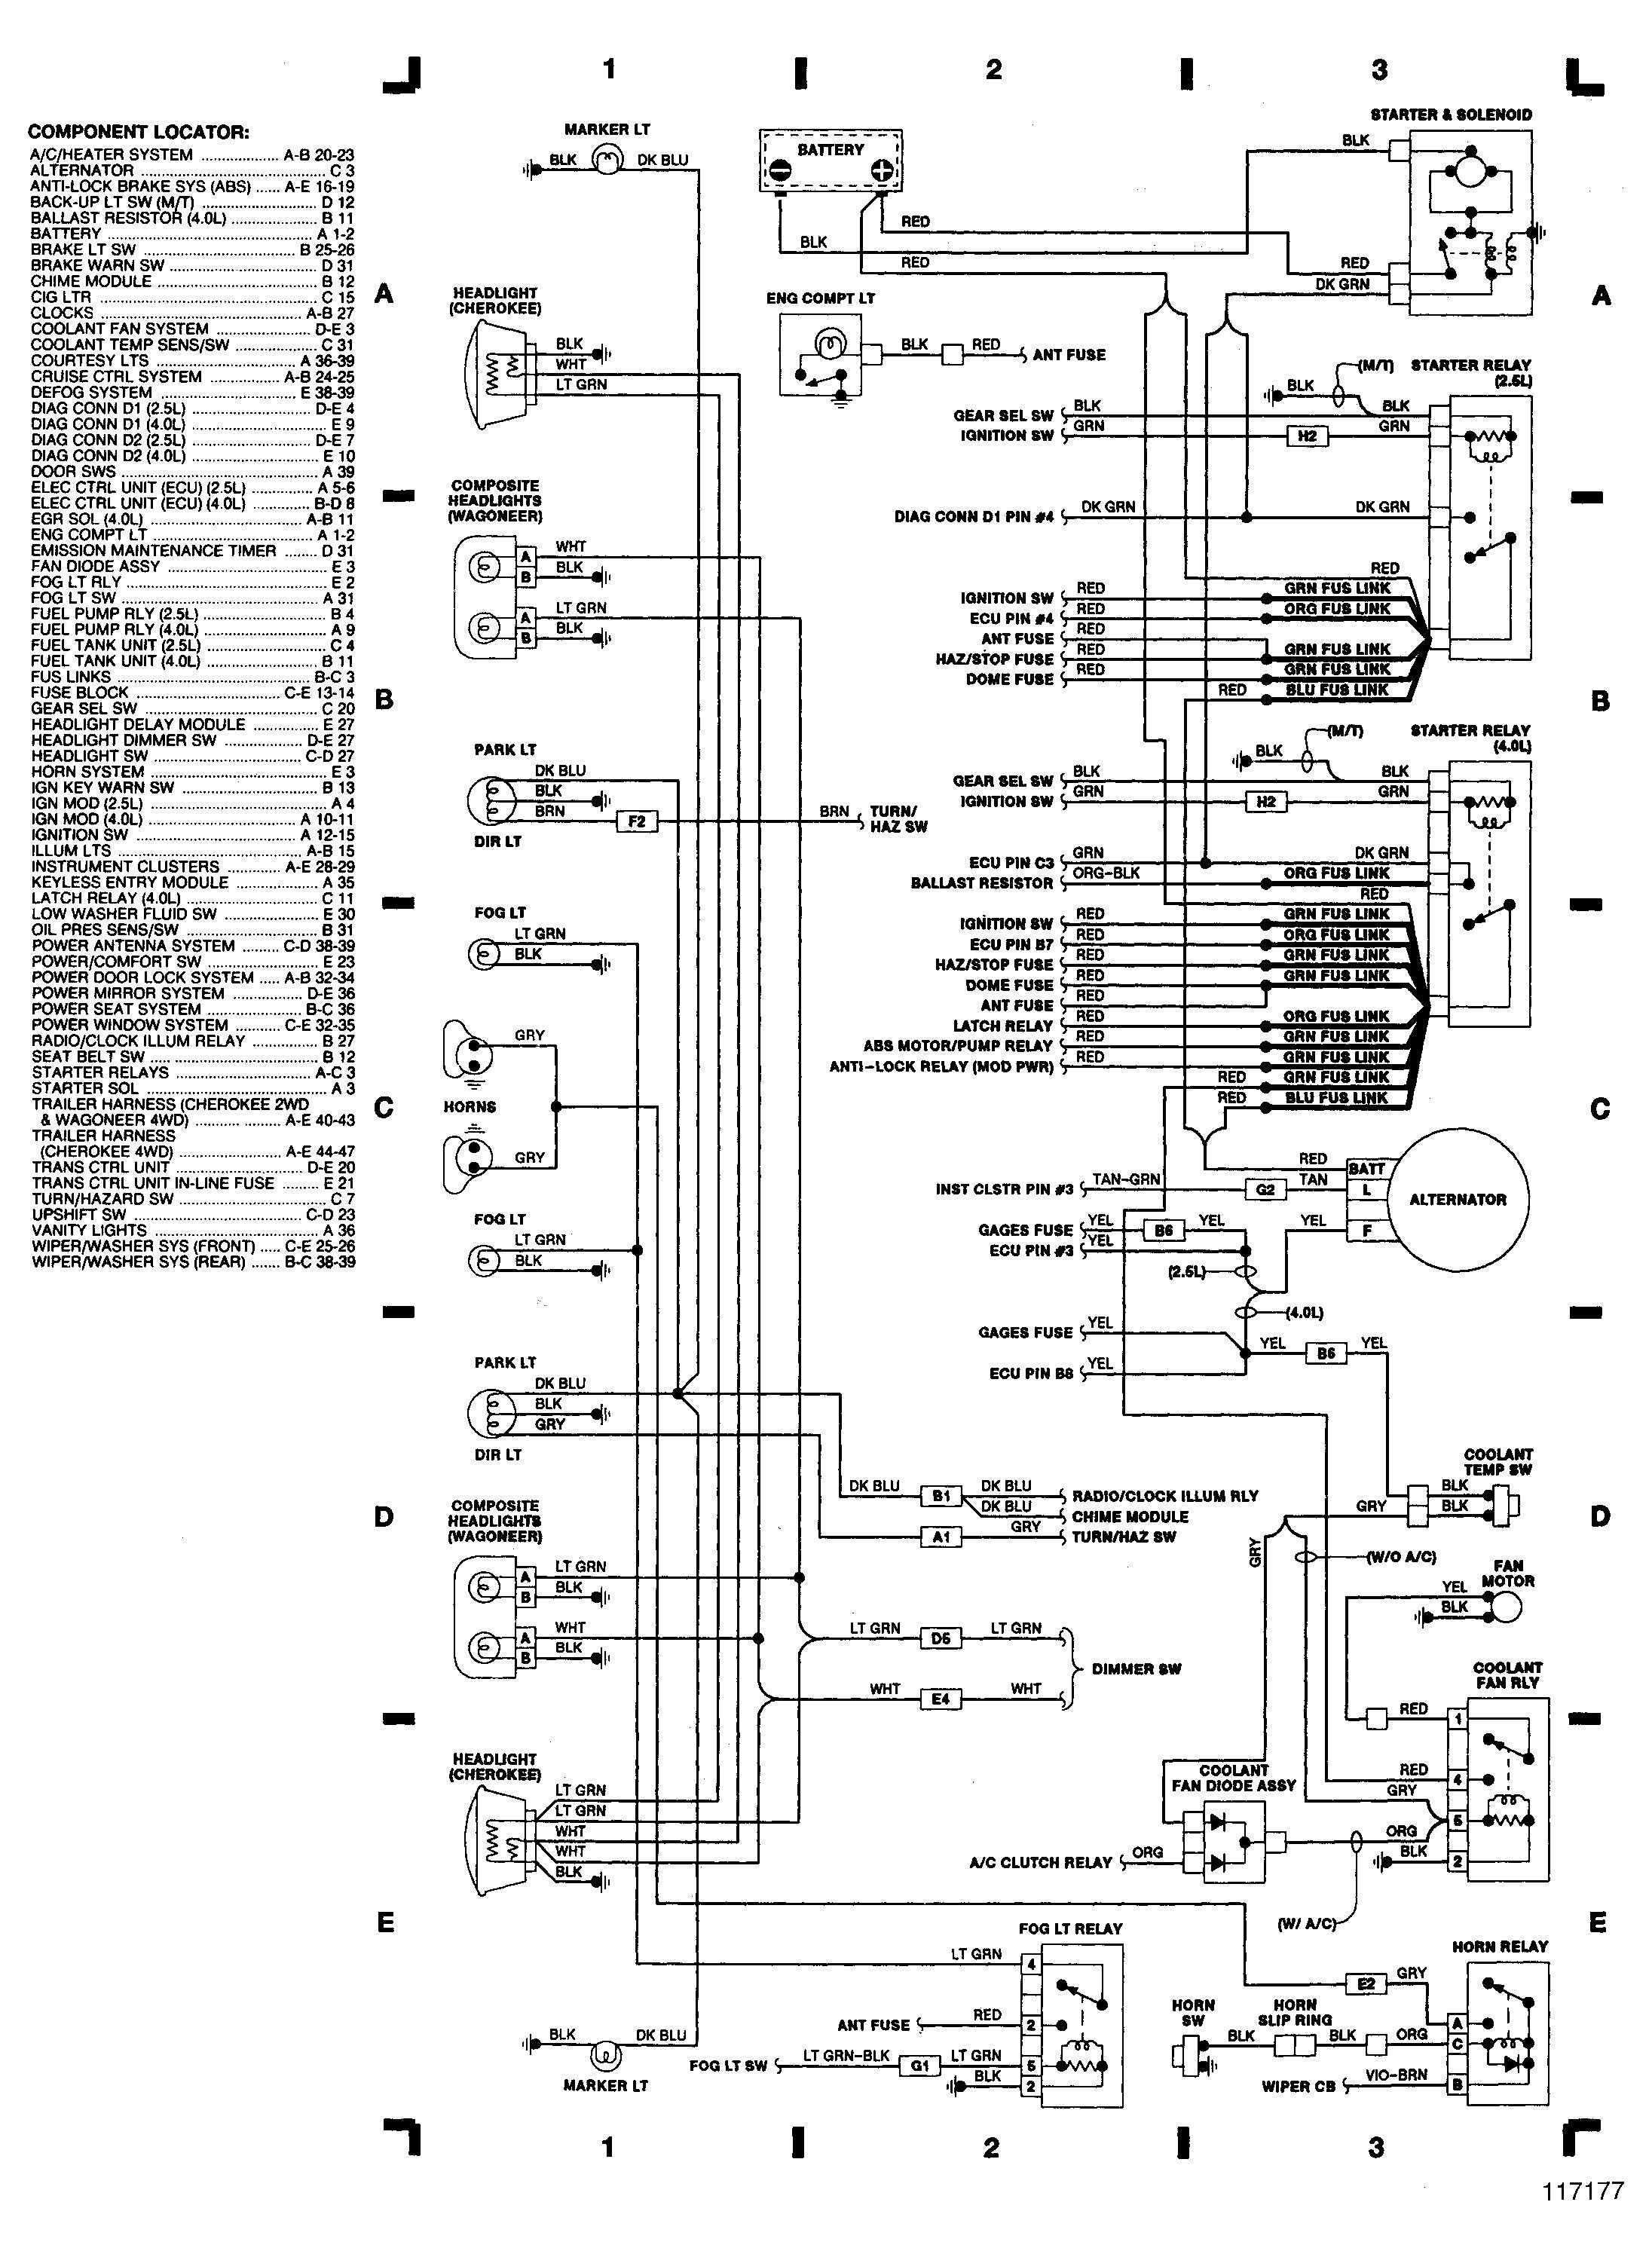 [DIAGRAM_4FR]  1999 Jeep Cherokee Xj Wiring Diagram - 1987 Chevy Brake Light Wiring for Wiring  Diagram Schematics | Wiring Diagram For 87 Grand Wagoneer |  | Wiring Diagram Schematics